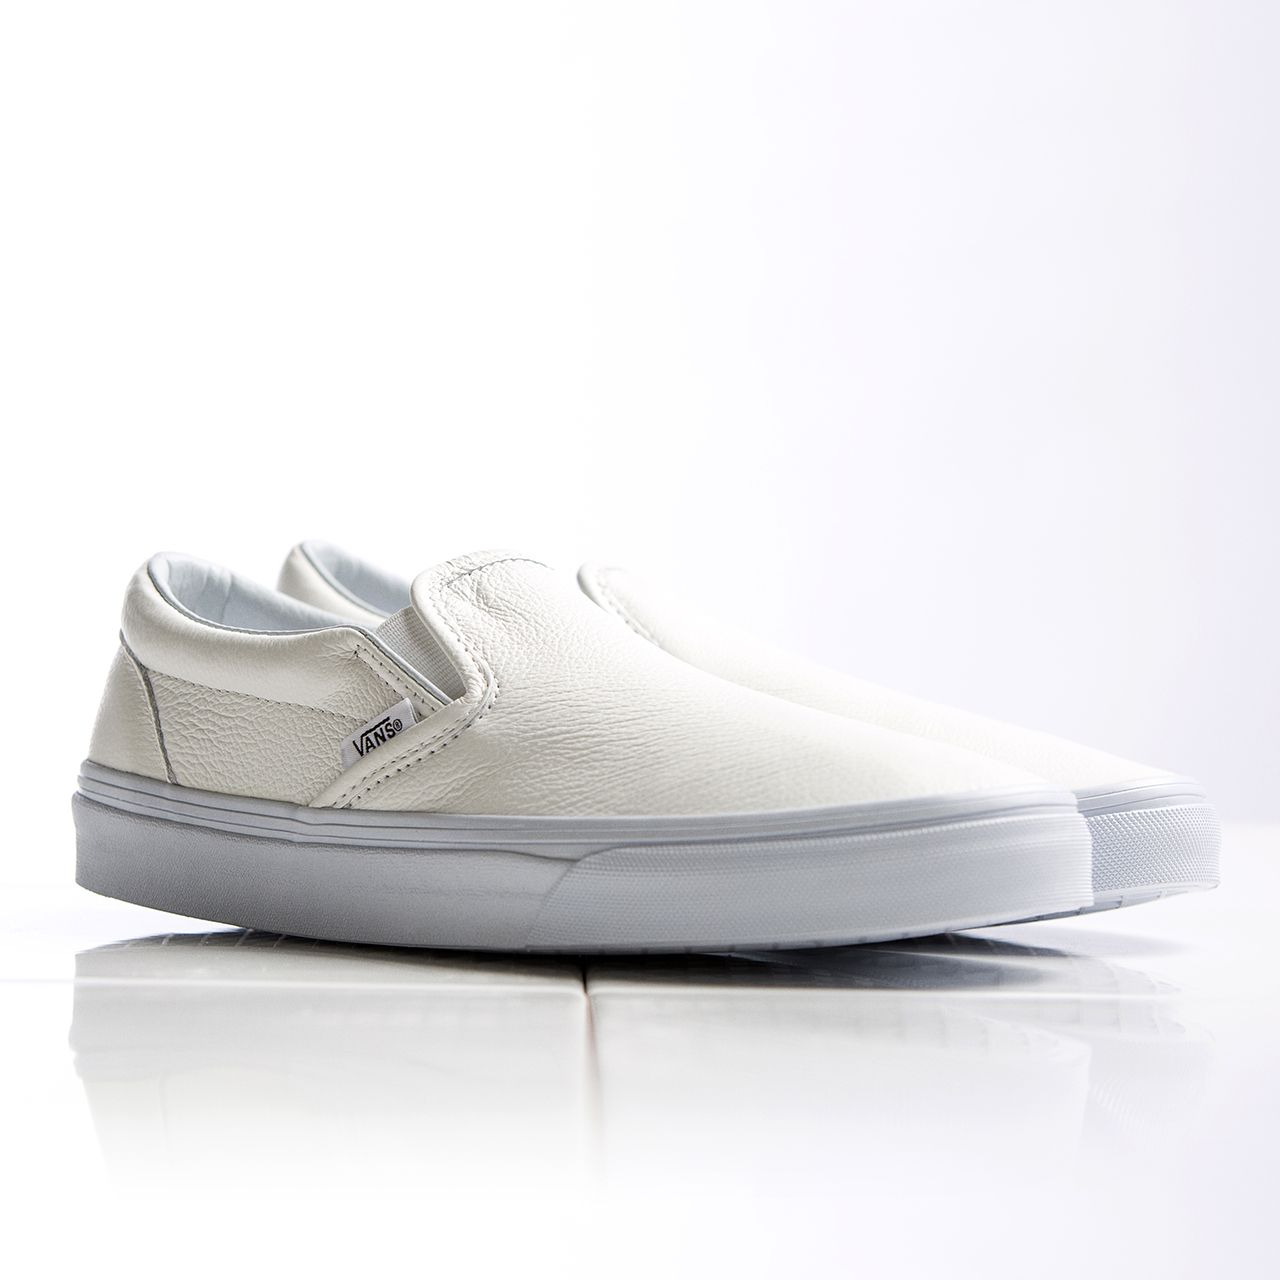 93e0f35d93eb Off The Wall - The Women s Vans Classic Leather Slip On Trainer in White is  now available online   in stores.